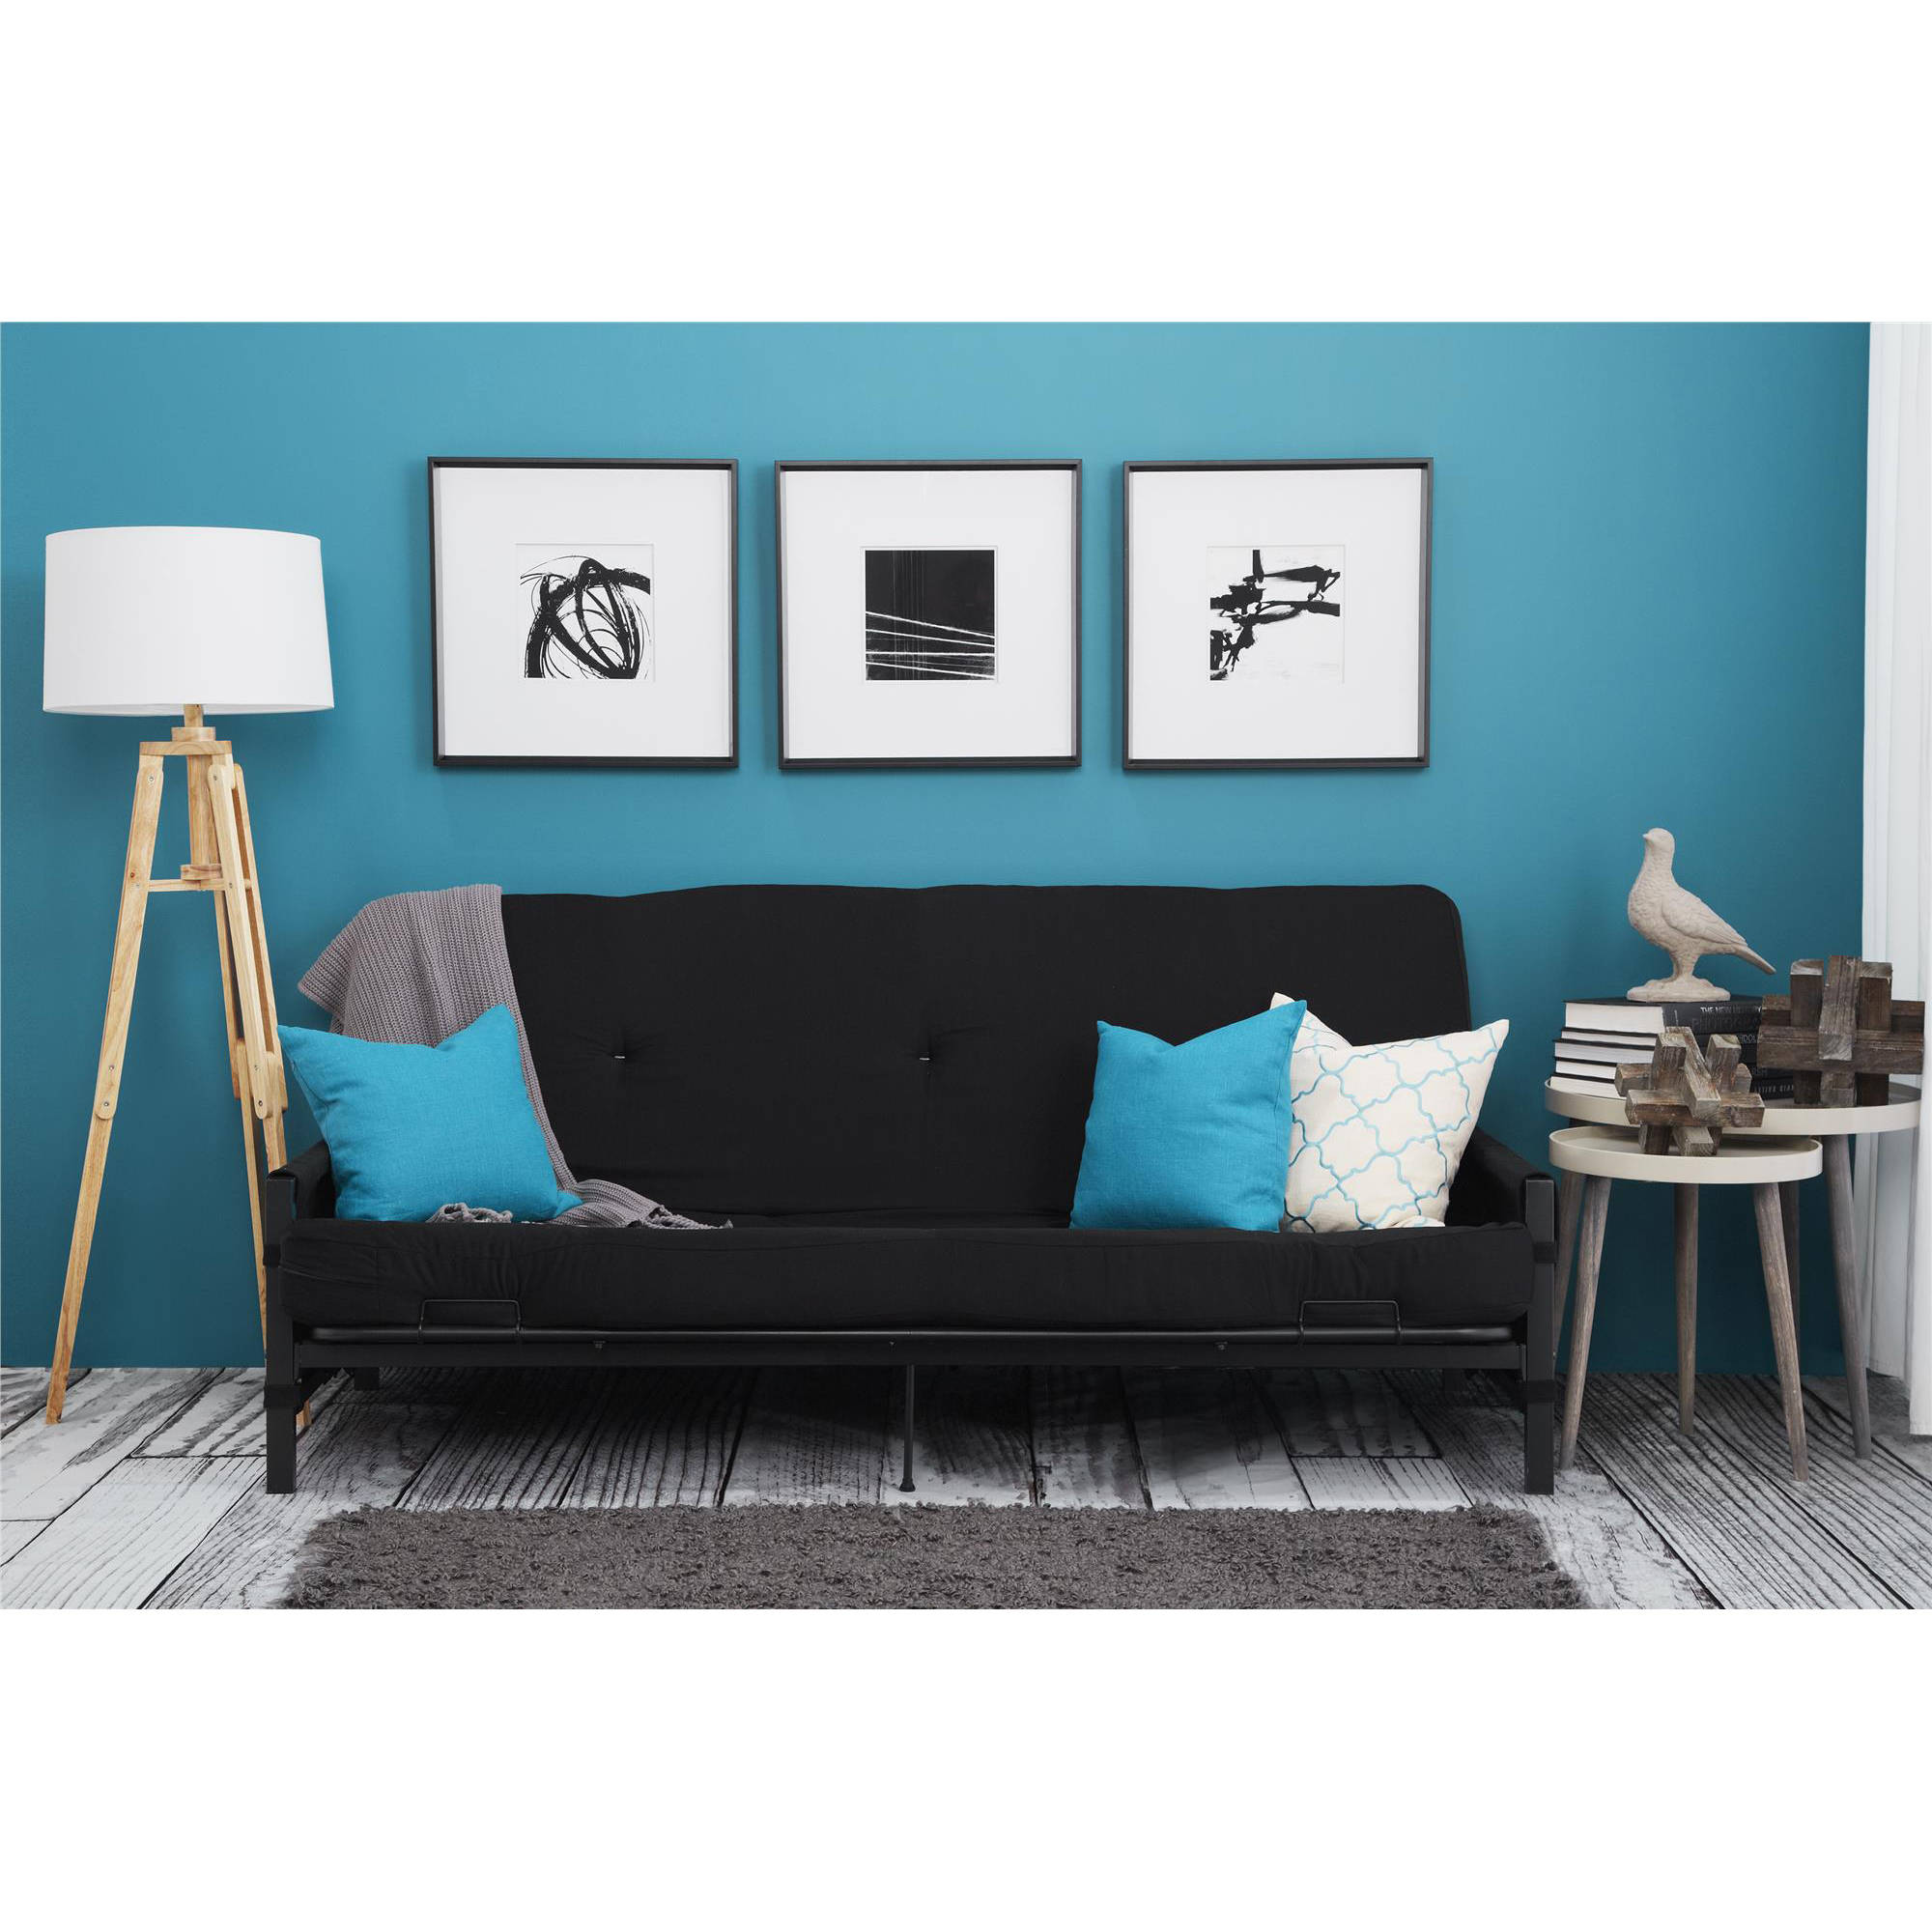 "Mainstays Fairview Storage Arm Futon with 6"" Mattress, Black"